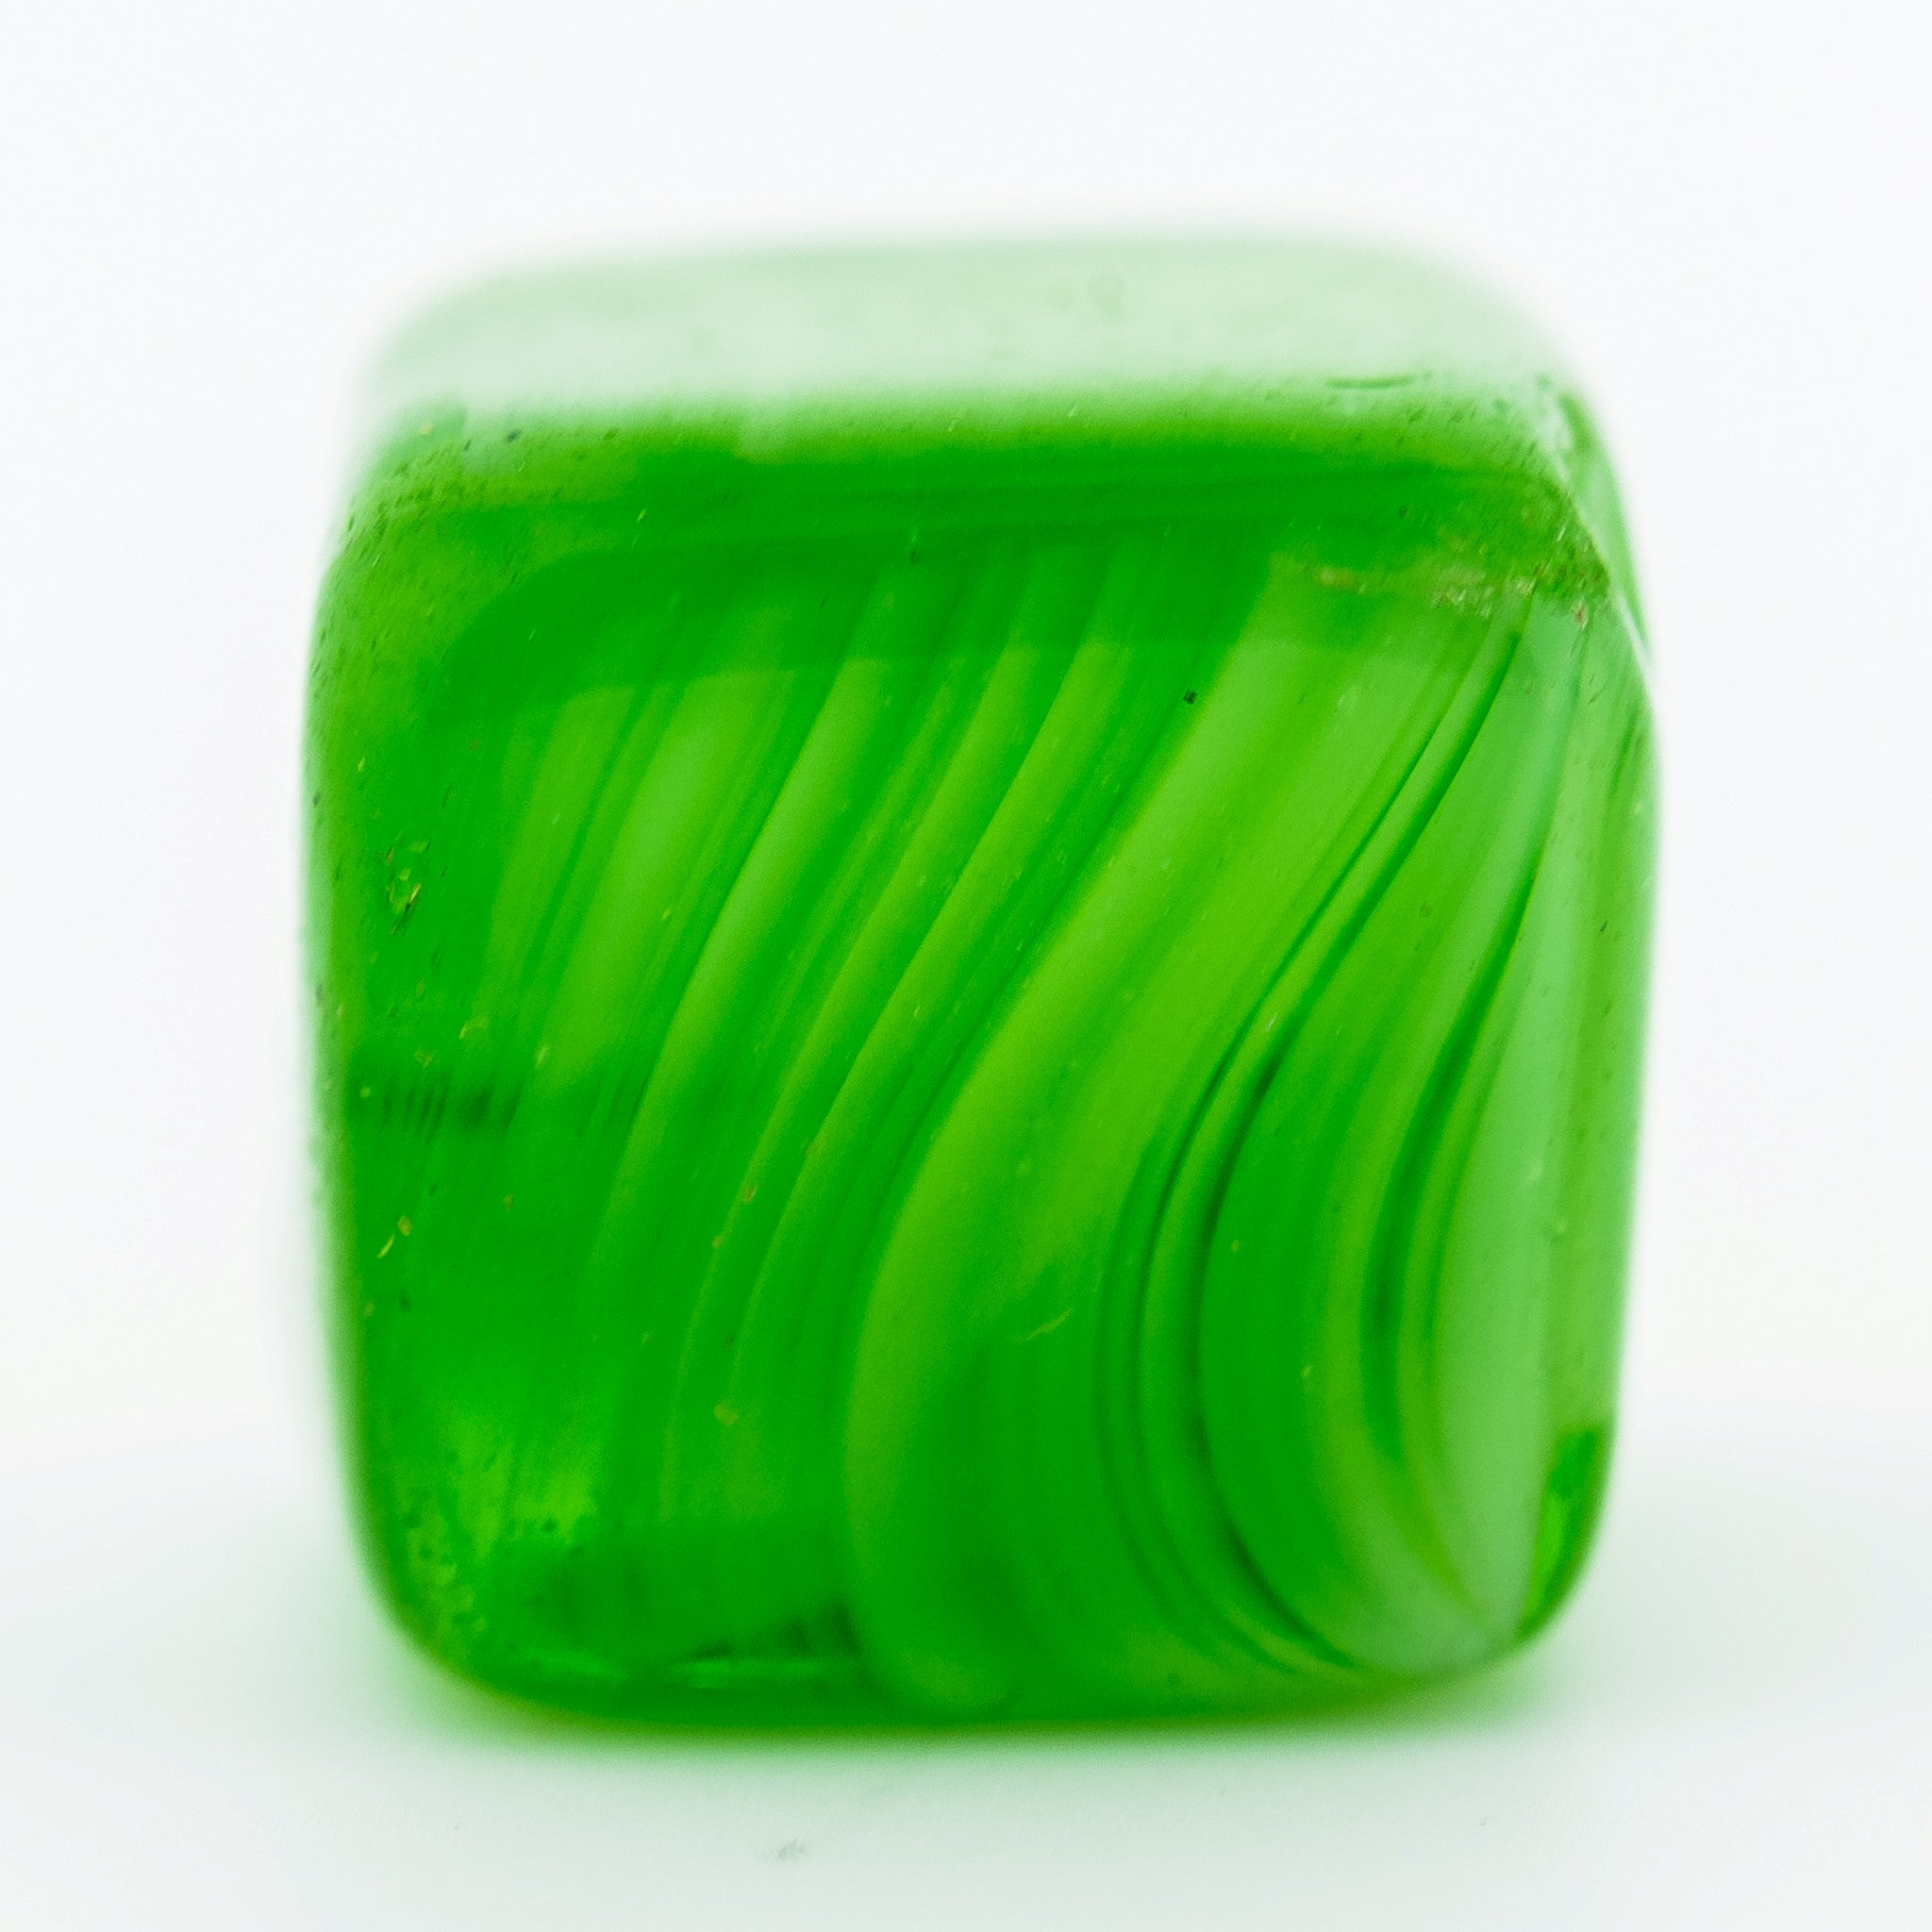 10MM Green Quartz Glass Cube Bead (36 pieces)